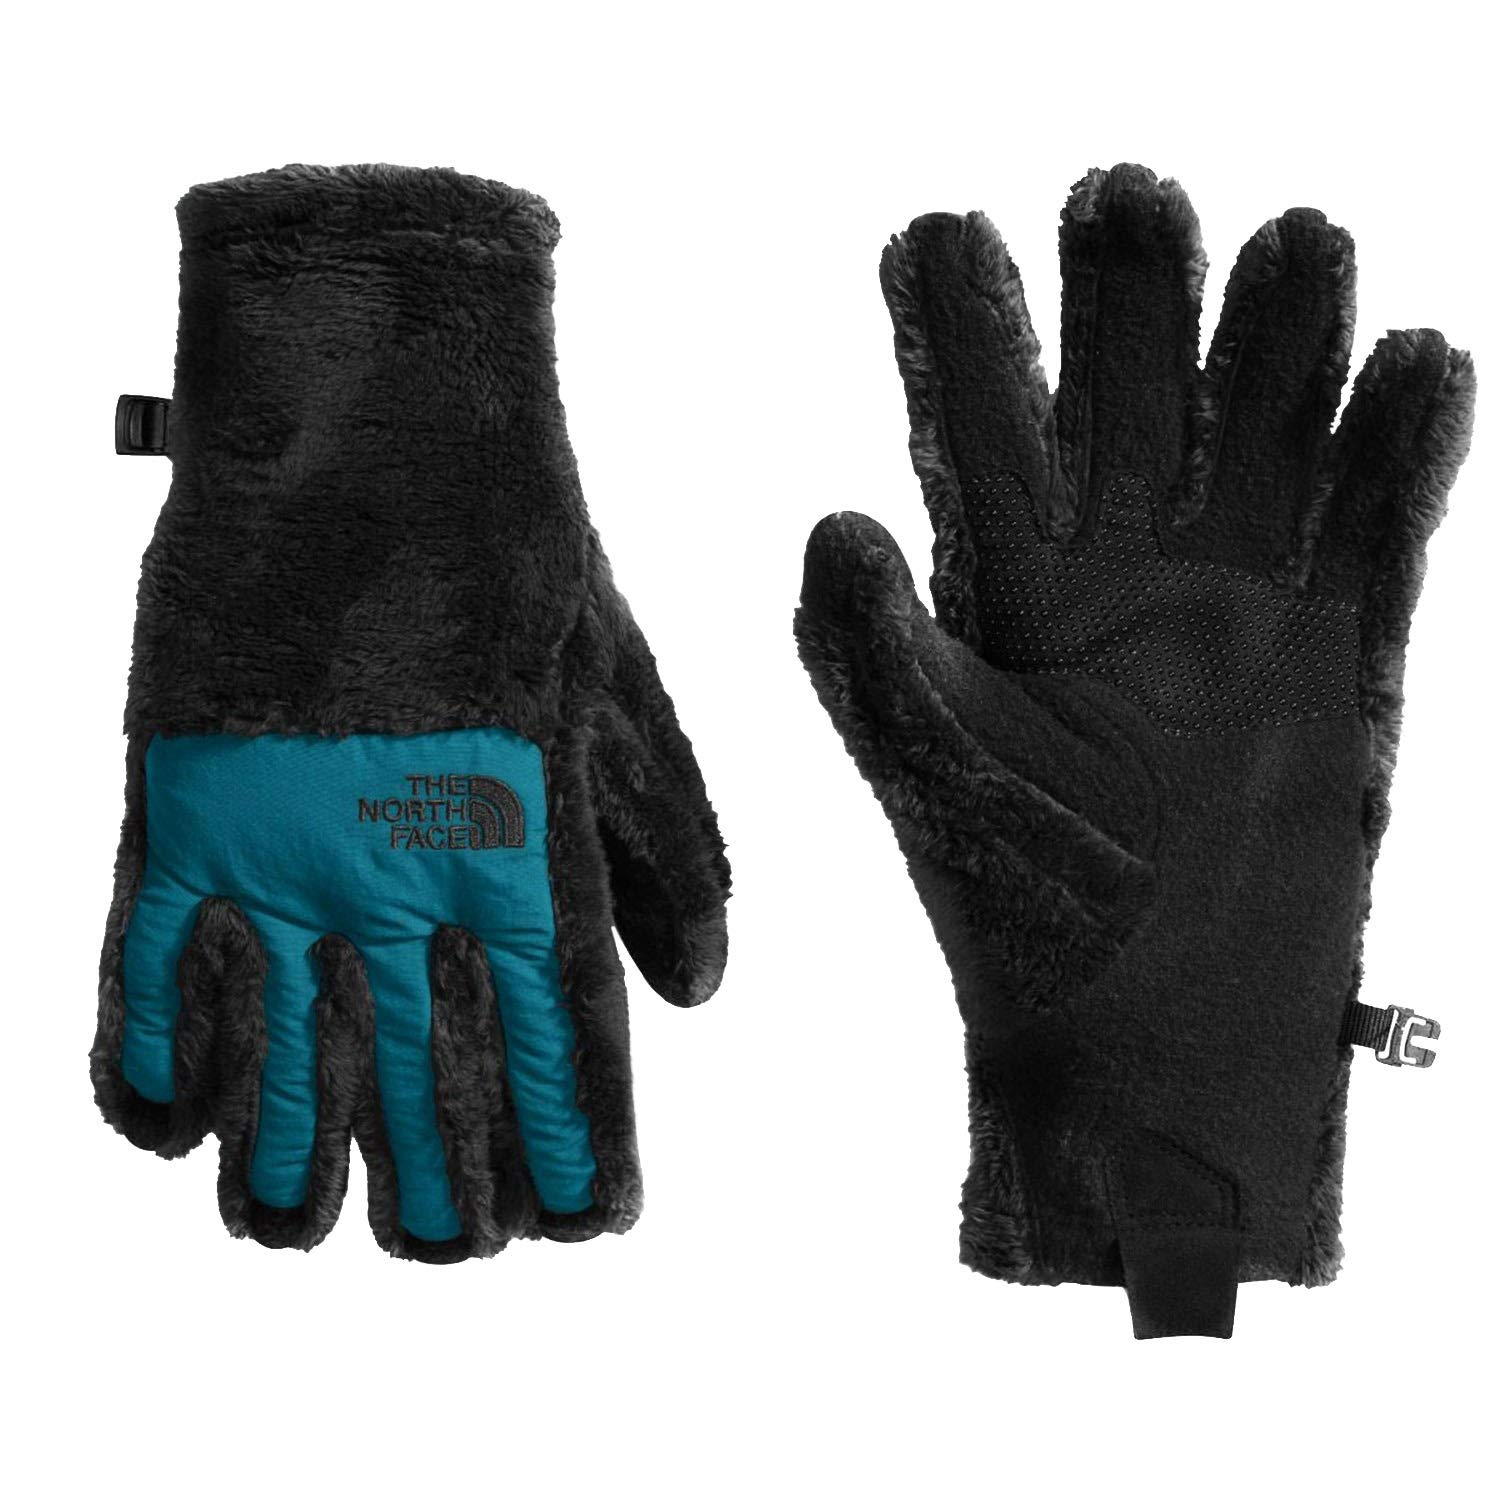 d8215fc43 The North Face Women's Denali Thermal Etip? Glove